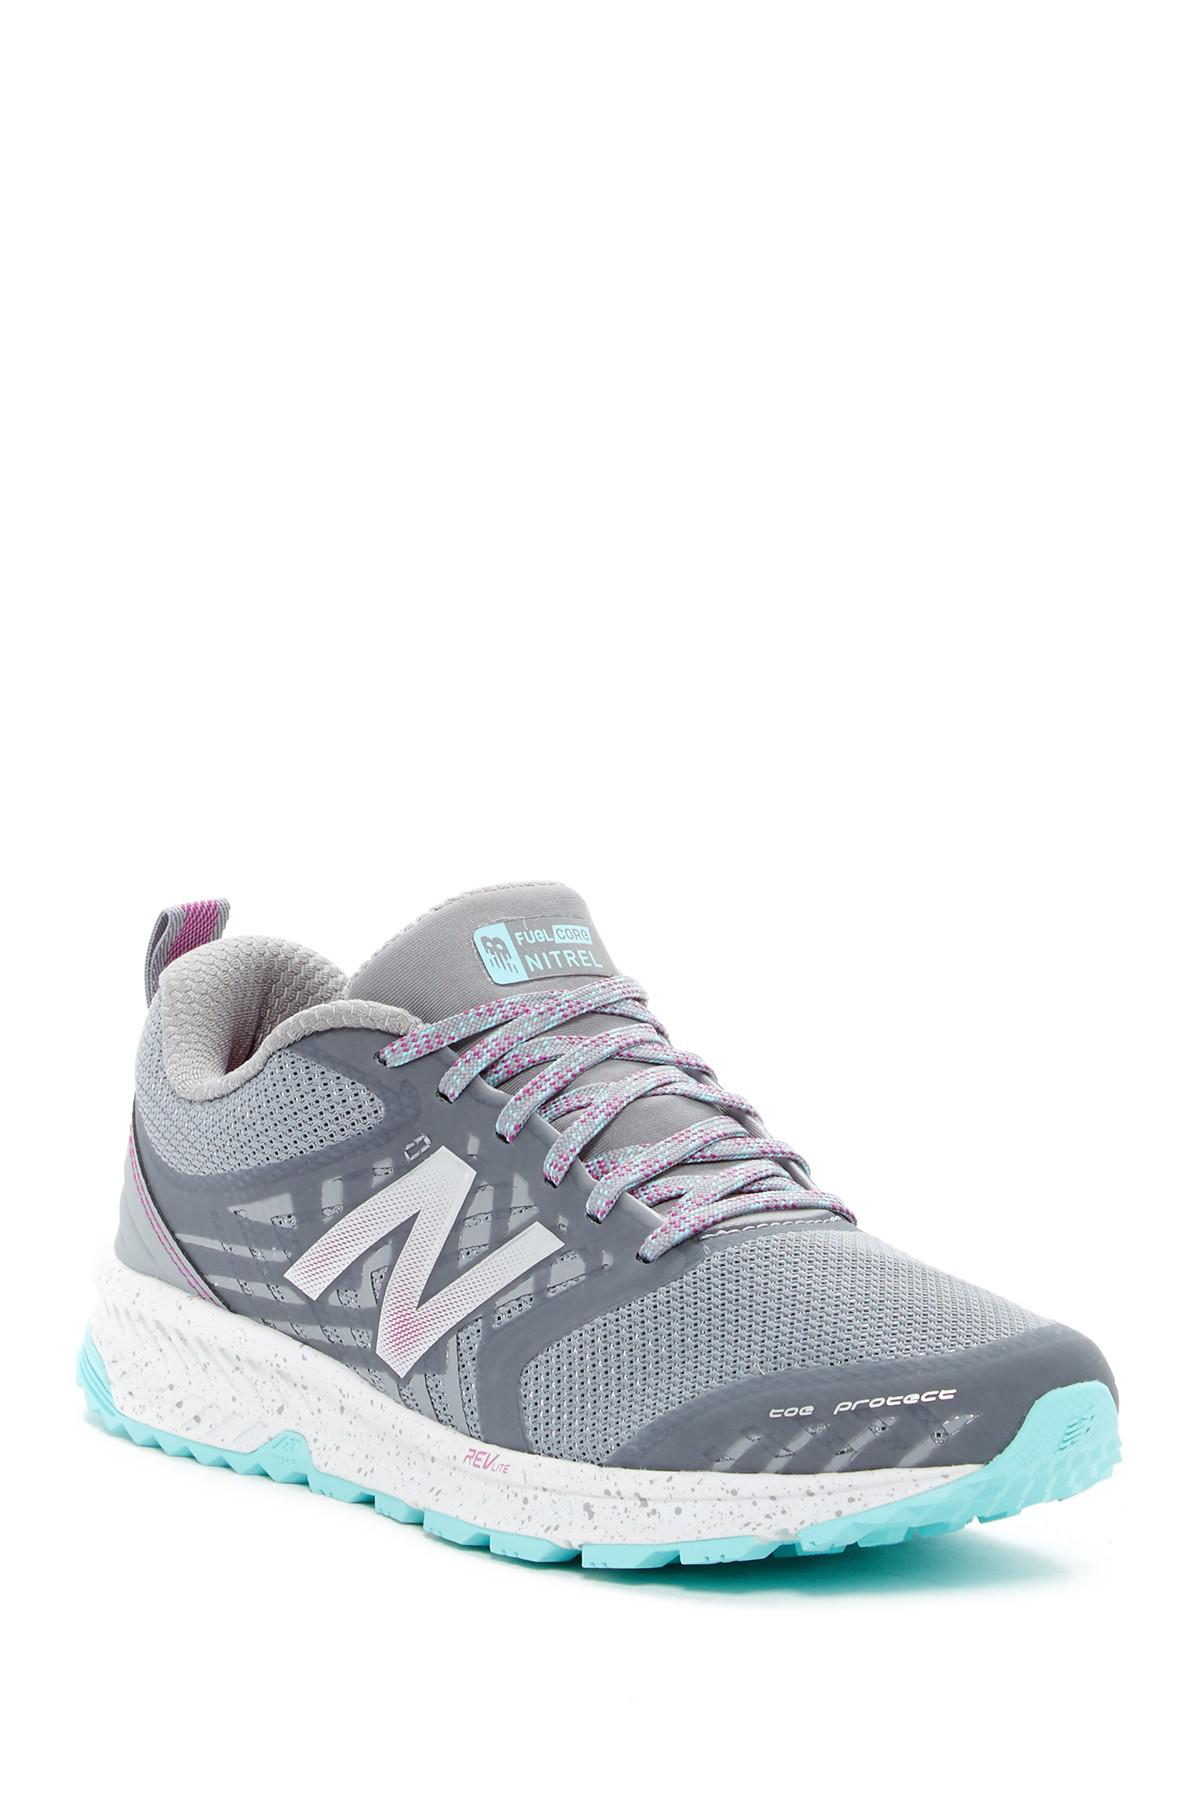 New Balance 690V2 Trail Running Sneaker - Wide Width Available OQbq4Bc